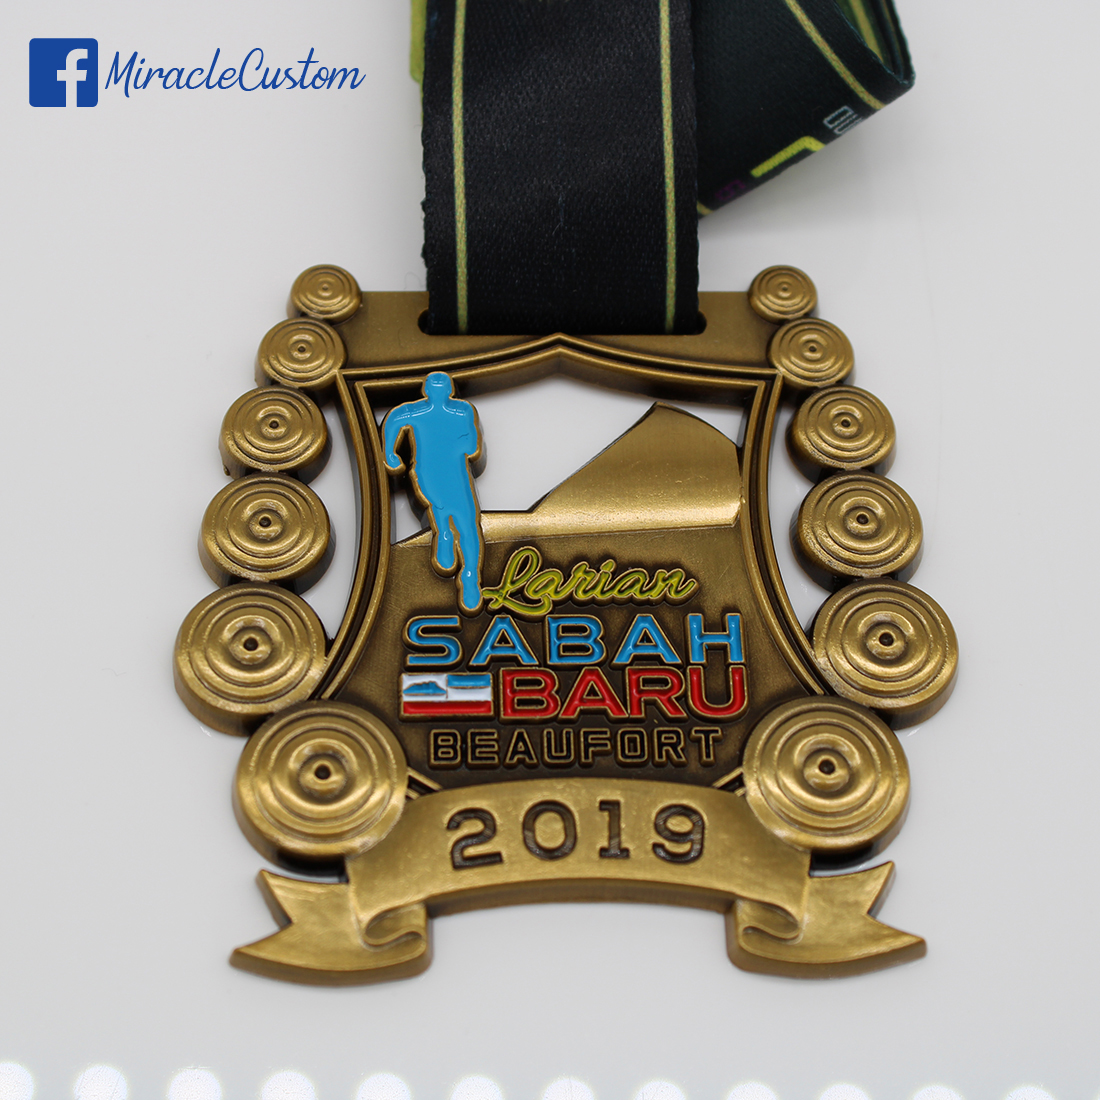 custom made race medals no minimum-www miraclecustom com